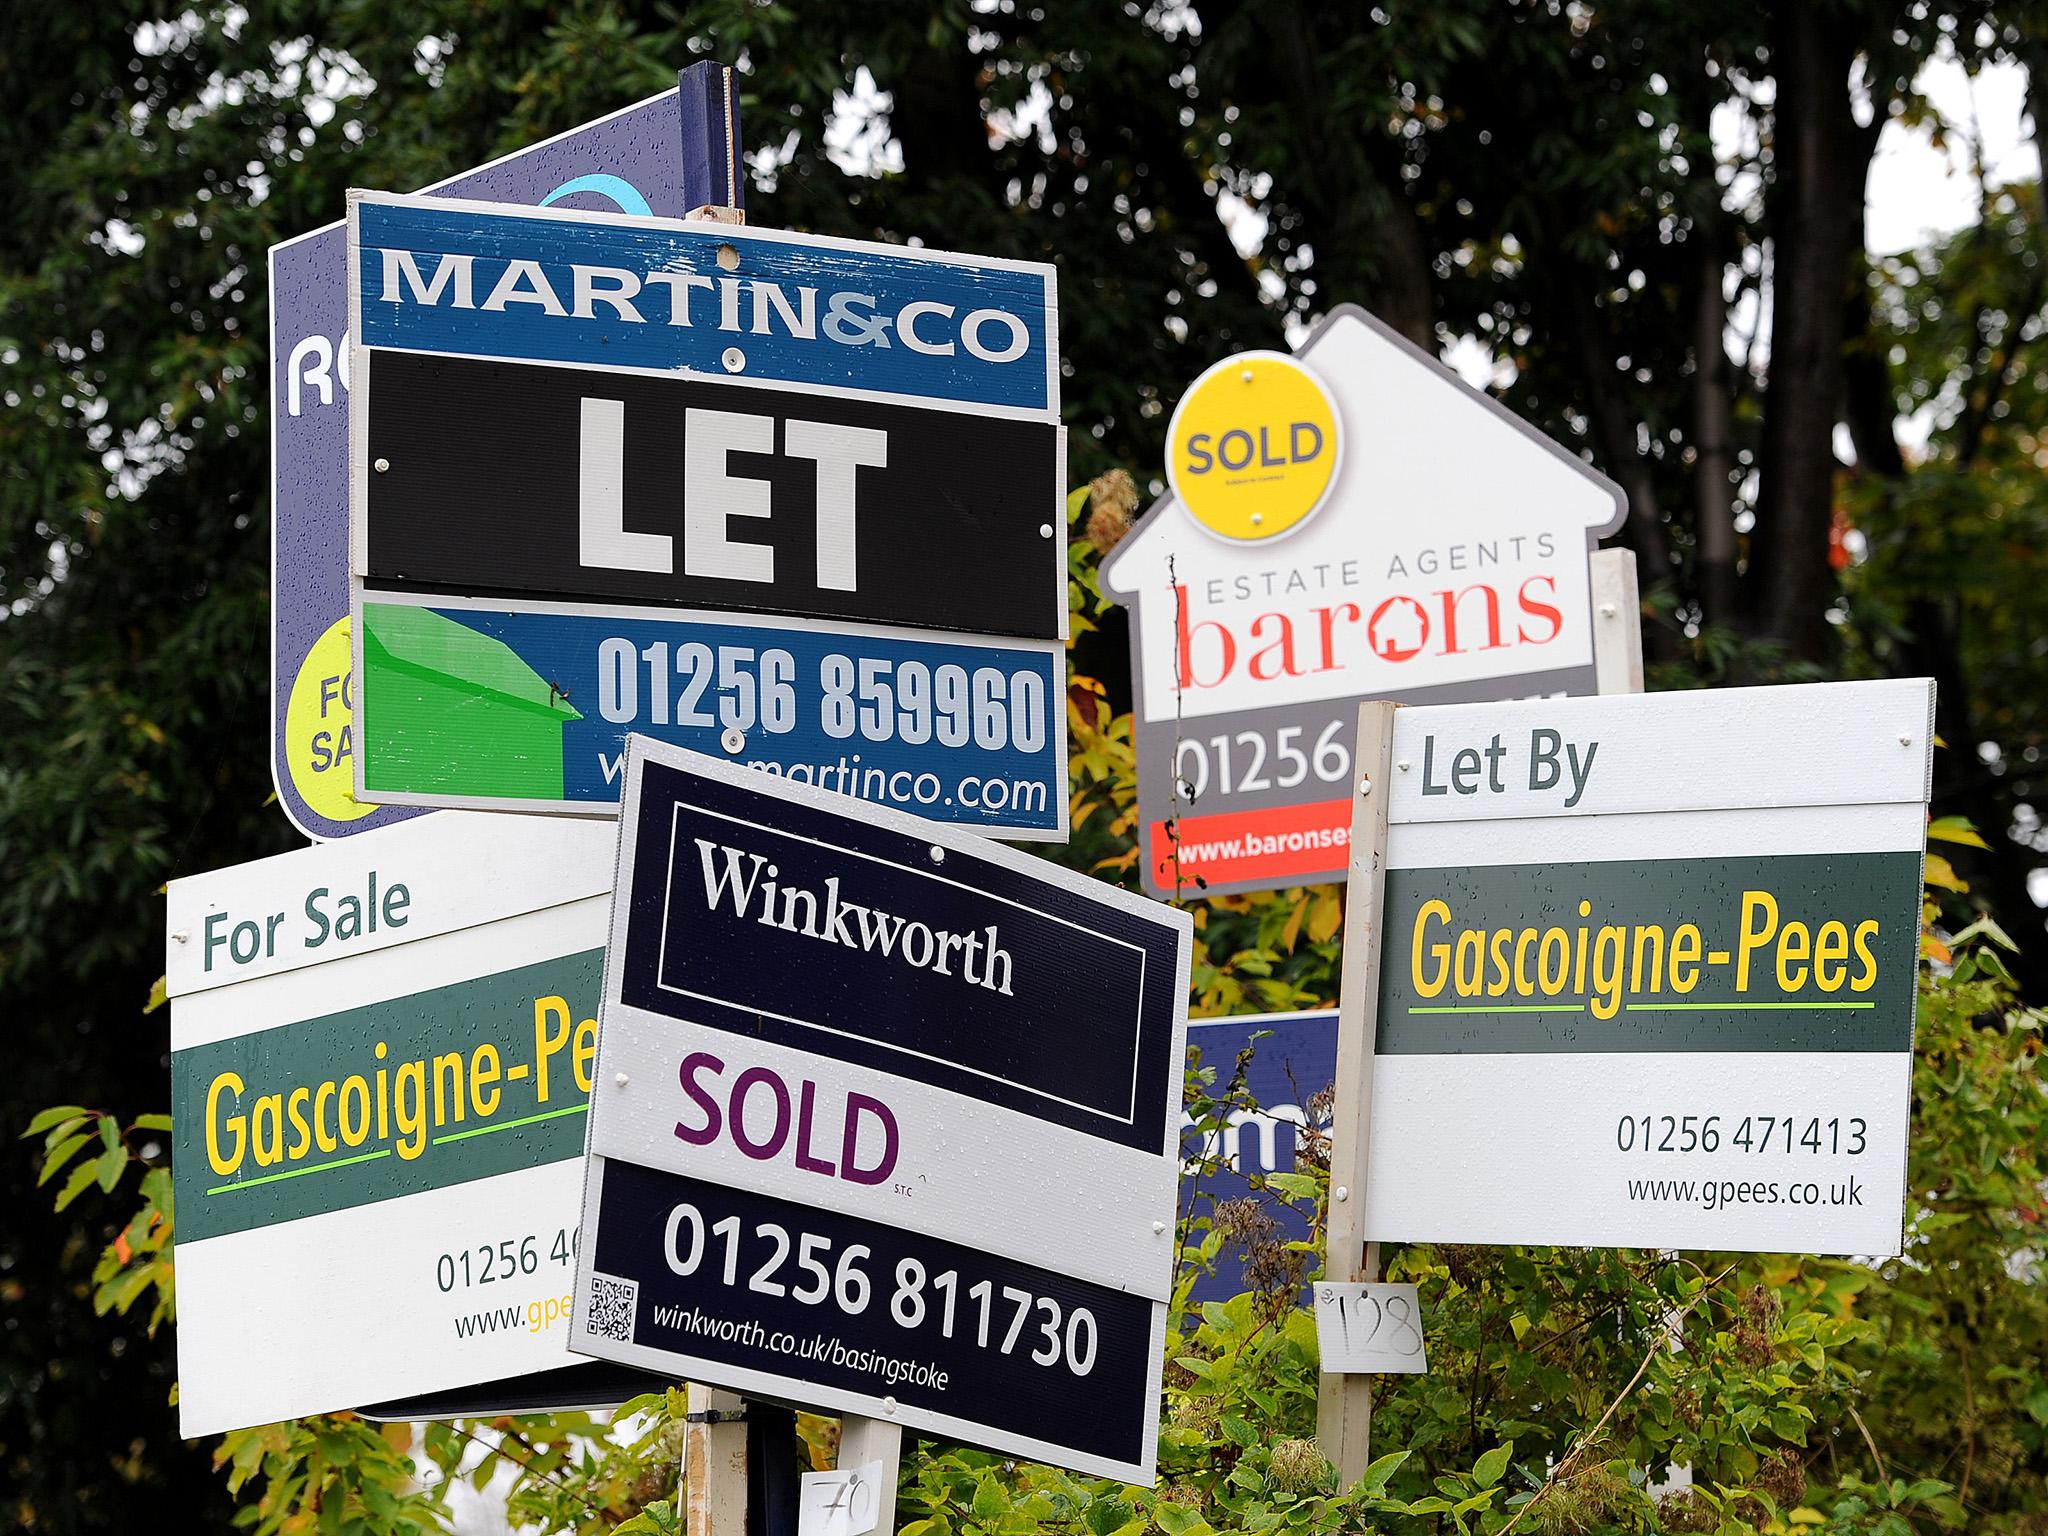 The housing market get-rich-quick scheme is dead in the water. And not a moment too soon